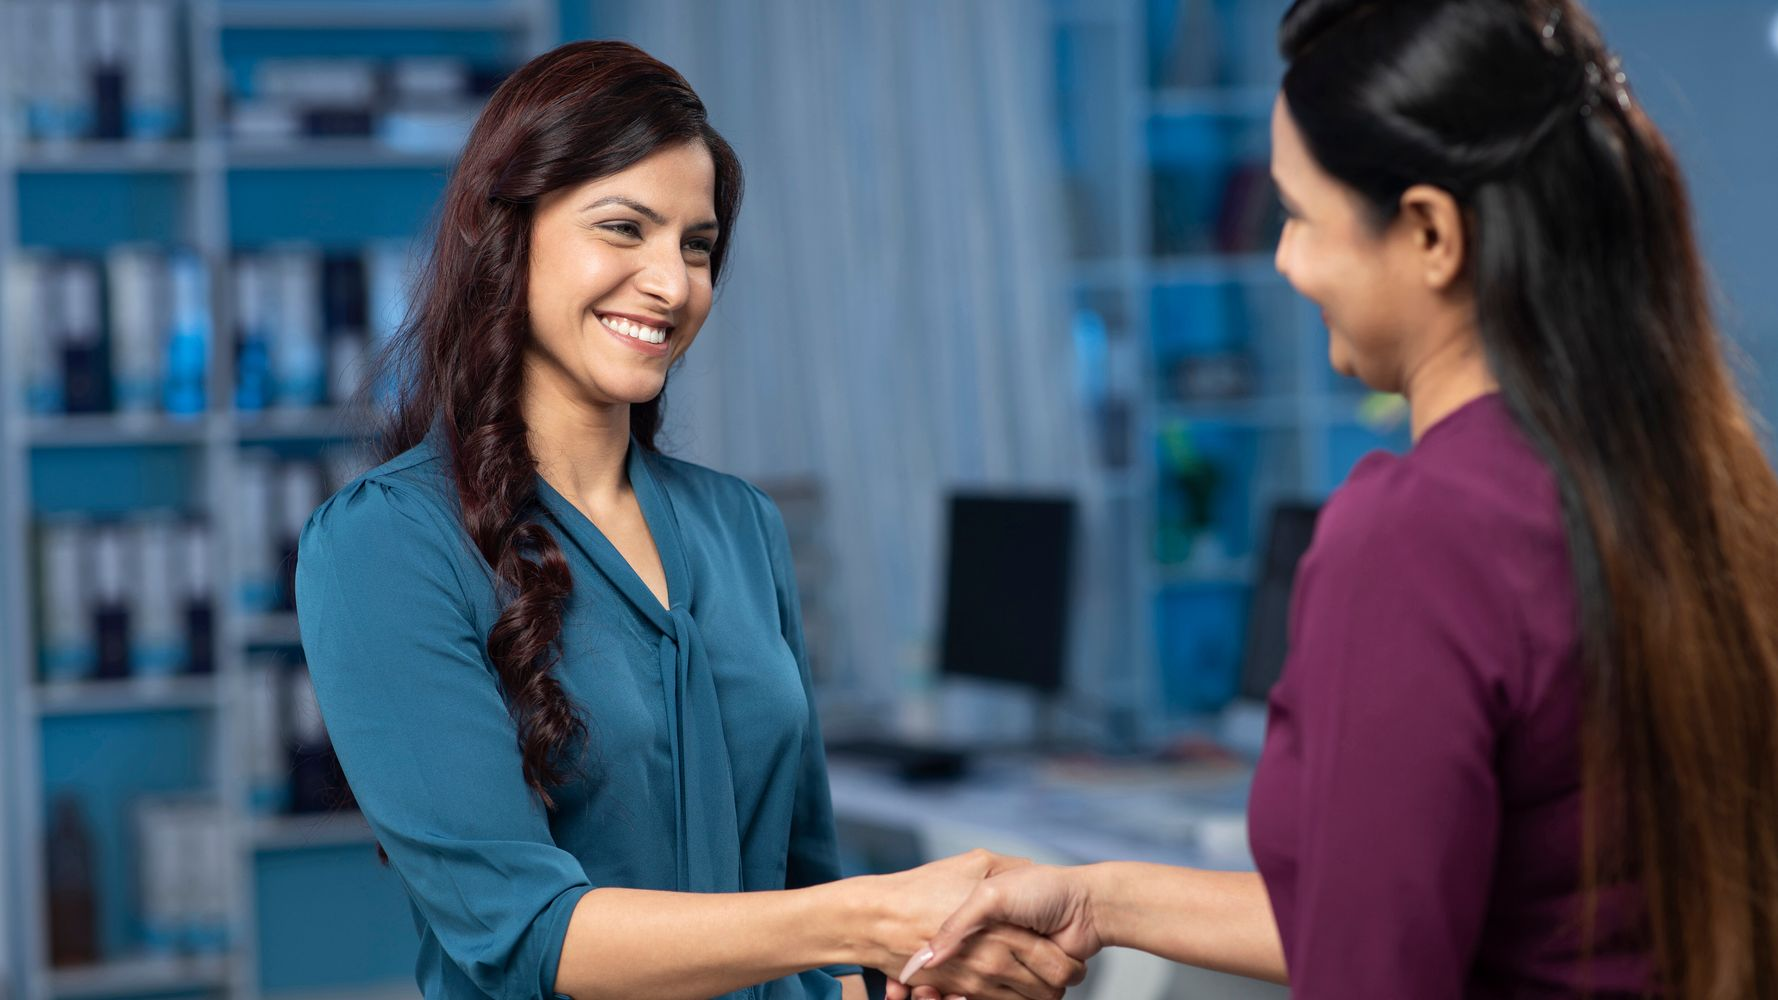 Want To Hire Diversely? This One Move Makes All The Difference